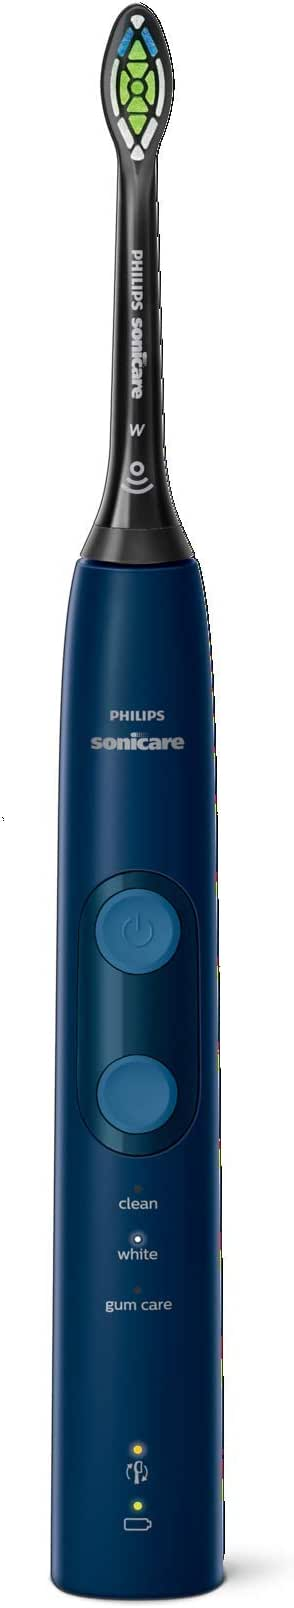 Philips Sonicare ProtectiveClean 5100 Sonic Electric Toothbrush with Built-in Pressure Sensor, 3 Modes & Travel Case, Navy Blue, HX6851/56